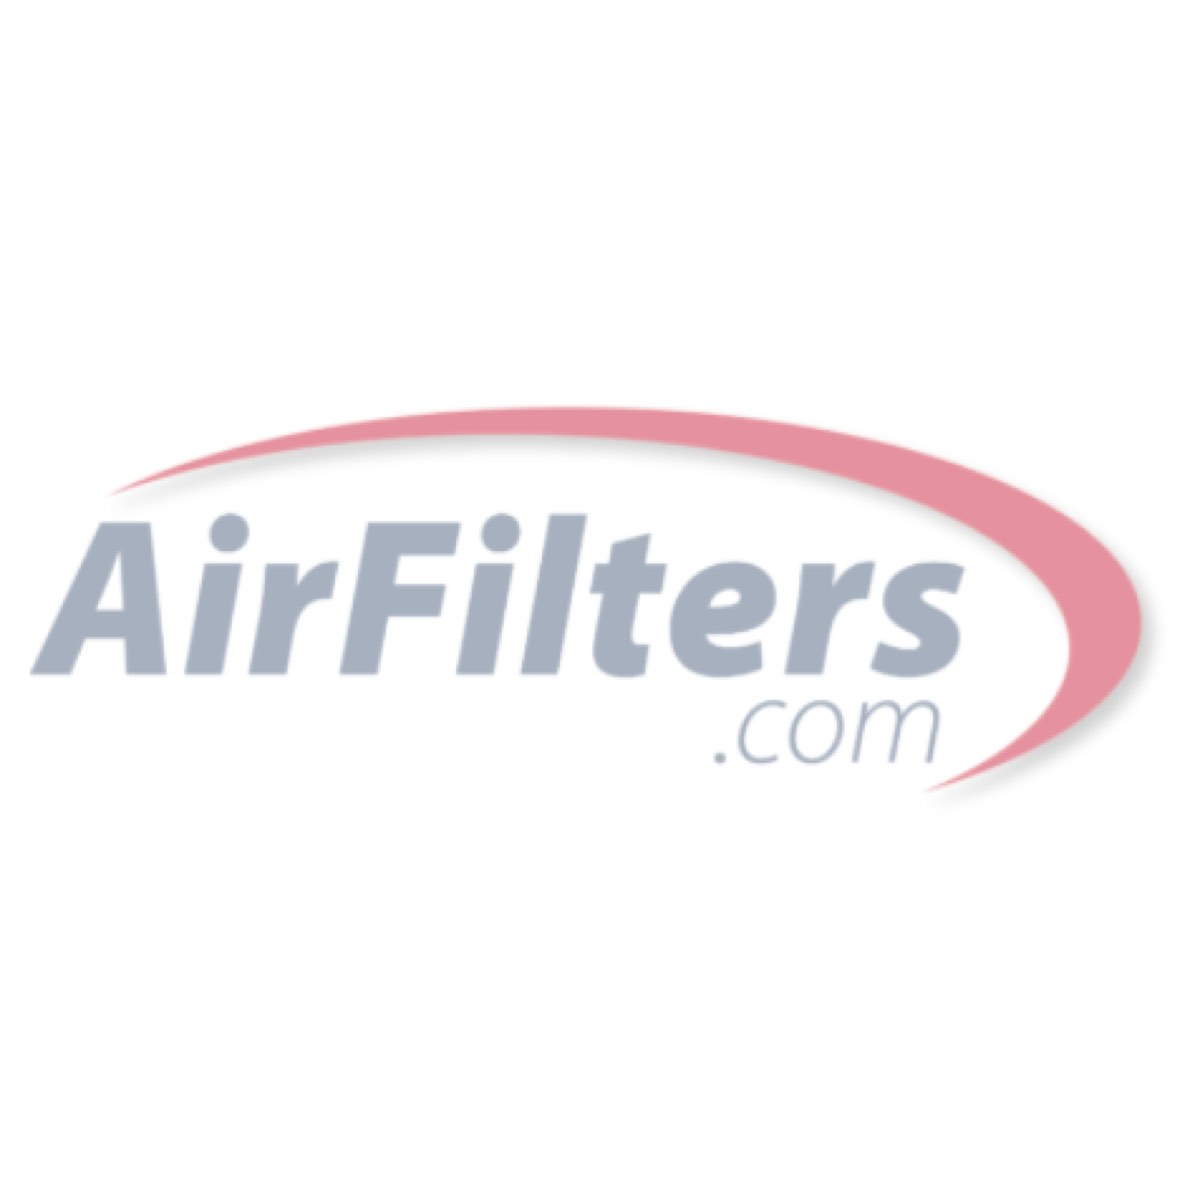 Carrier® FILCCCAR0020 Filters (20x25x5 - 19.88x24.75x4.38) by Accumulair®